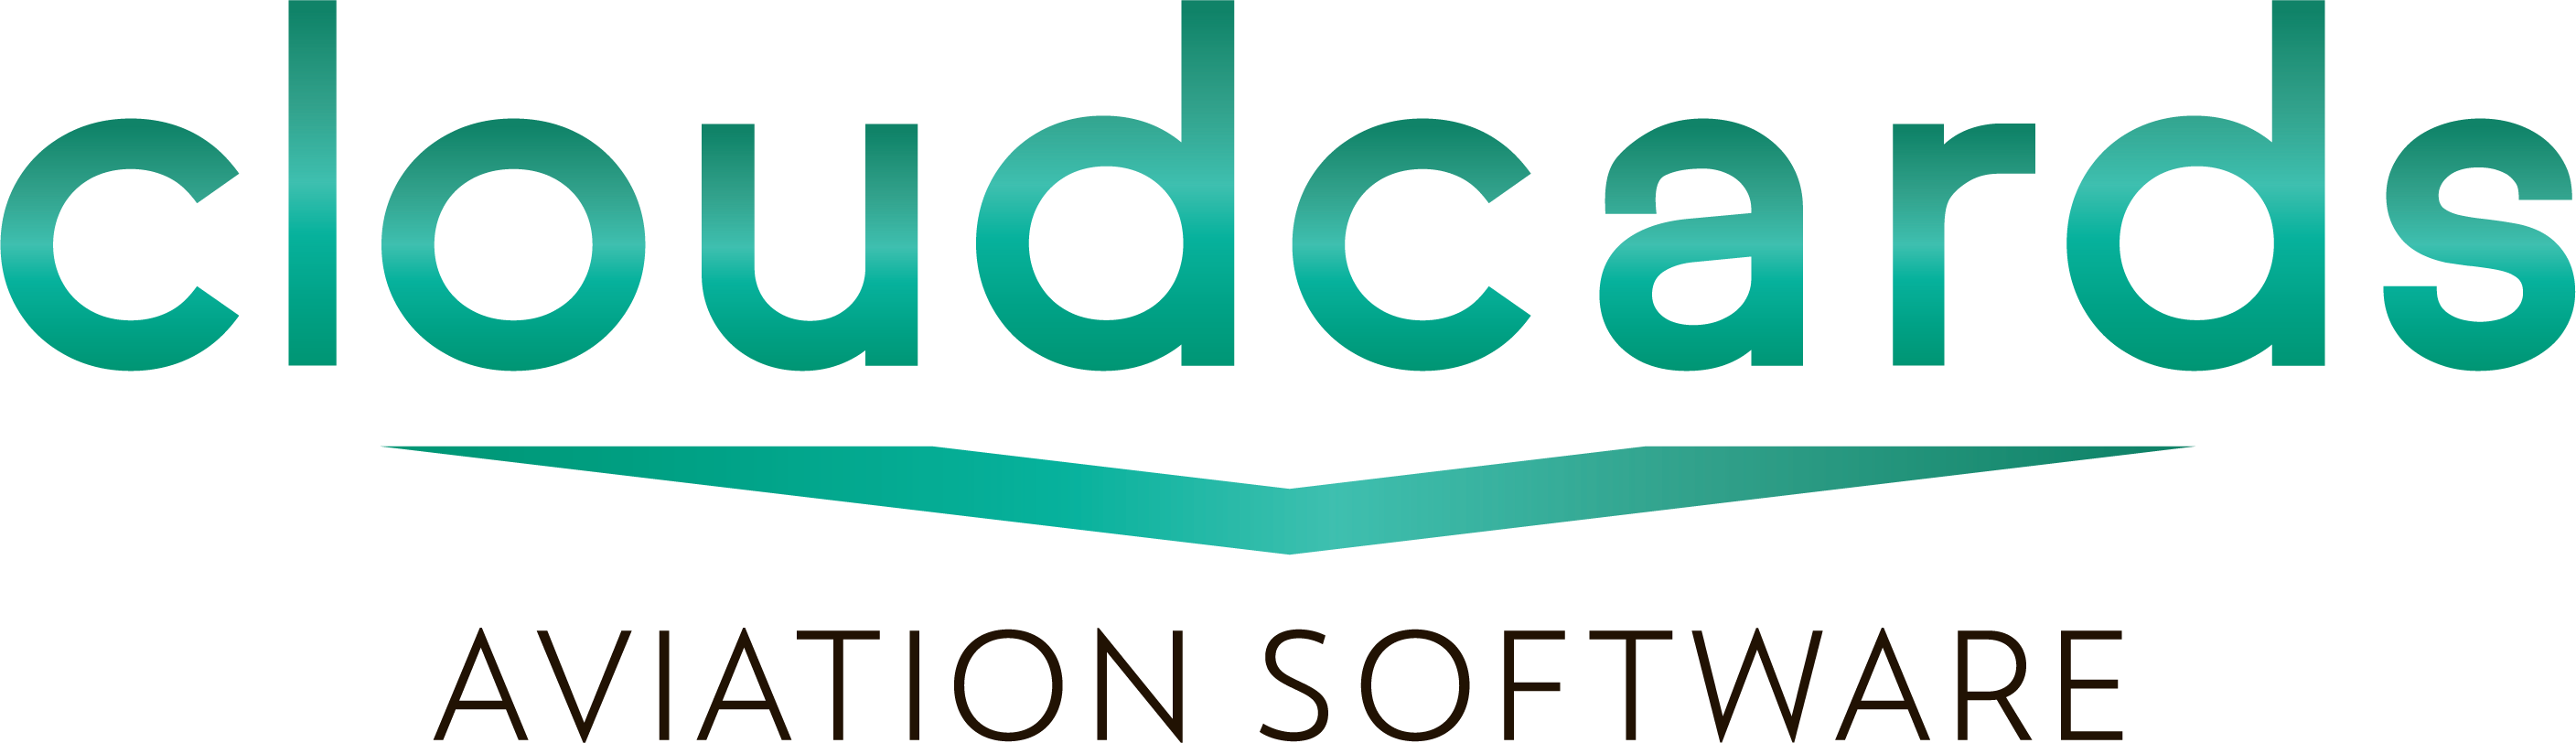 Cloudcards Logo Original